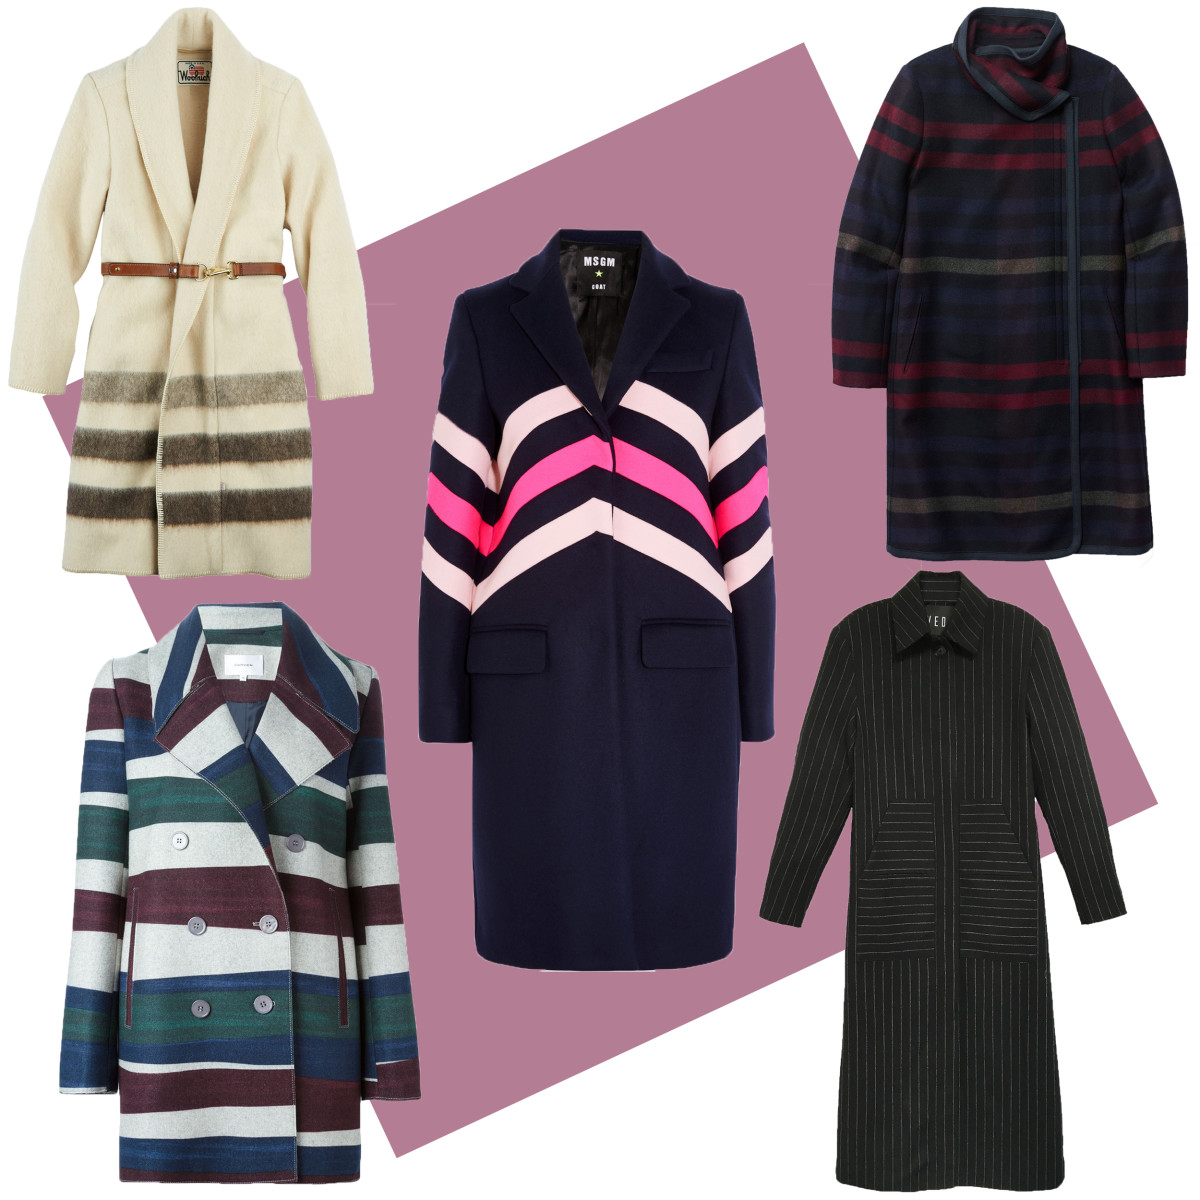 TOP LEFT: Woolrich blanket coat, $550, available at Woolrich; CENTER: MSGM chevron-paneled coat, $820, available at Net-a-Porter; TOP RIGHT: Aritzia Cormac jacket, $375, available at Aritzia; BOTTOM LEFT: Carven striped short coat, $972.82, available at Farfetch; BOTTOM RIGHT: Veda chalked pinstripe coat, $855, available at Veda.